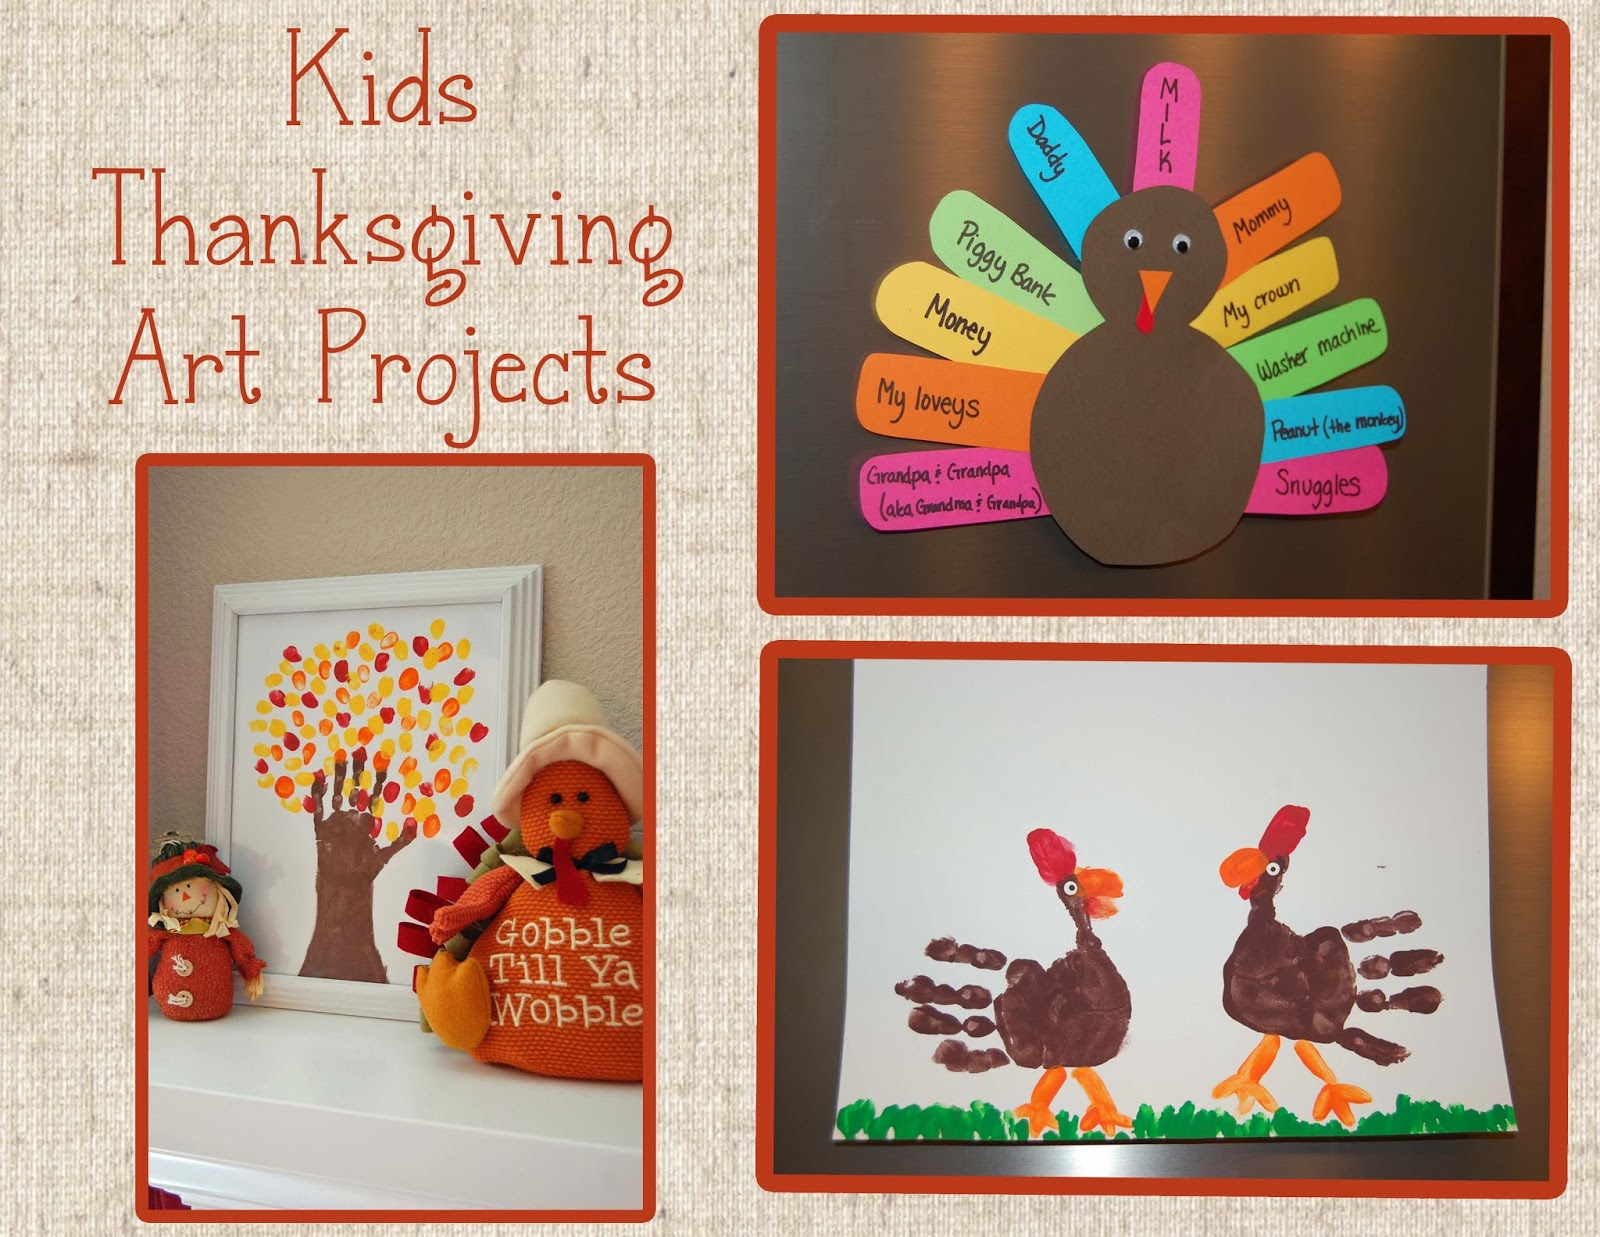 Thankgiving Art Projects For Kids